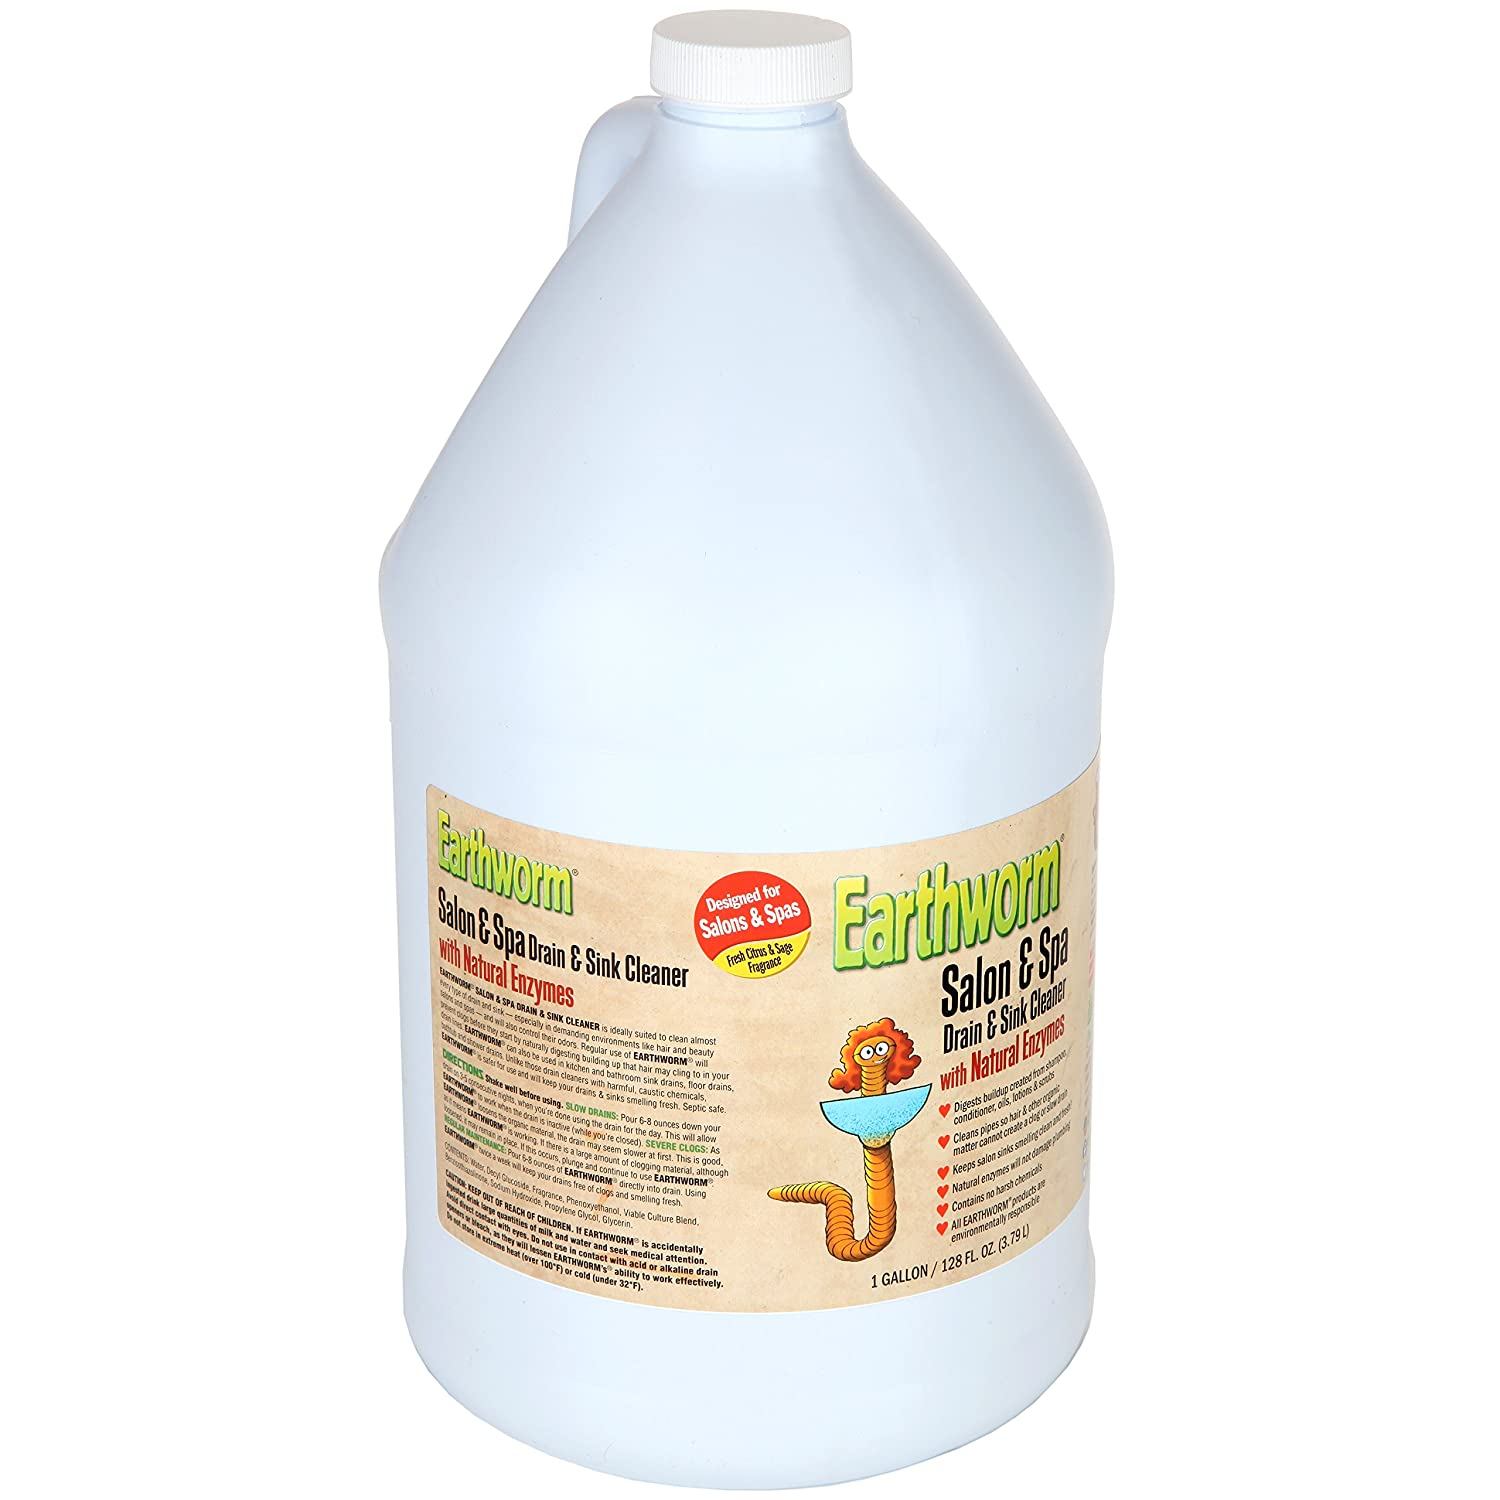 Amazon Earthworm Salon & Spa Drain and Sink Cleaner Drain